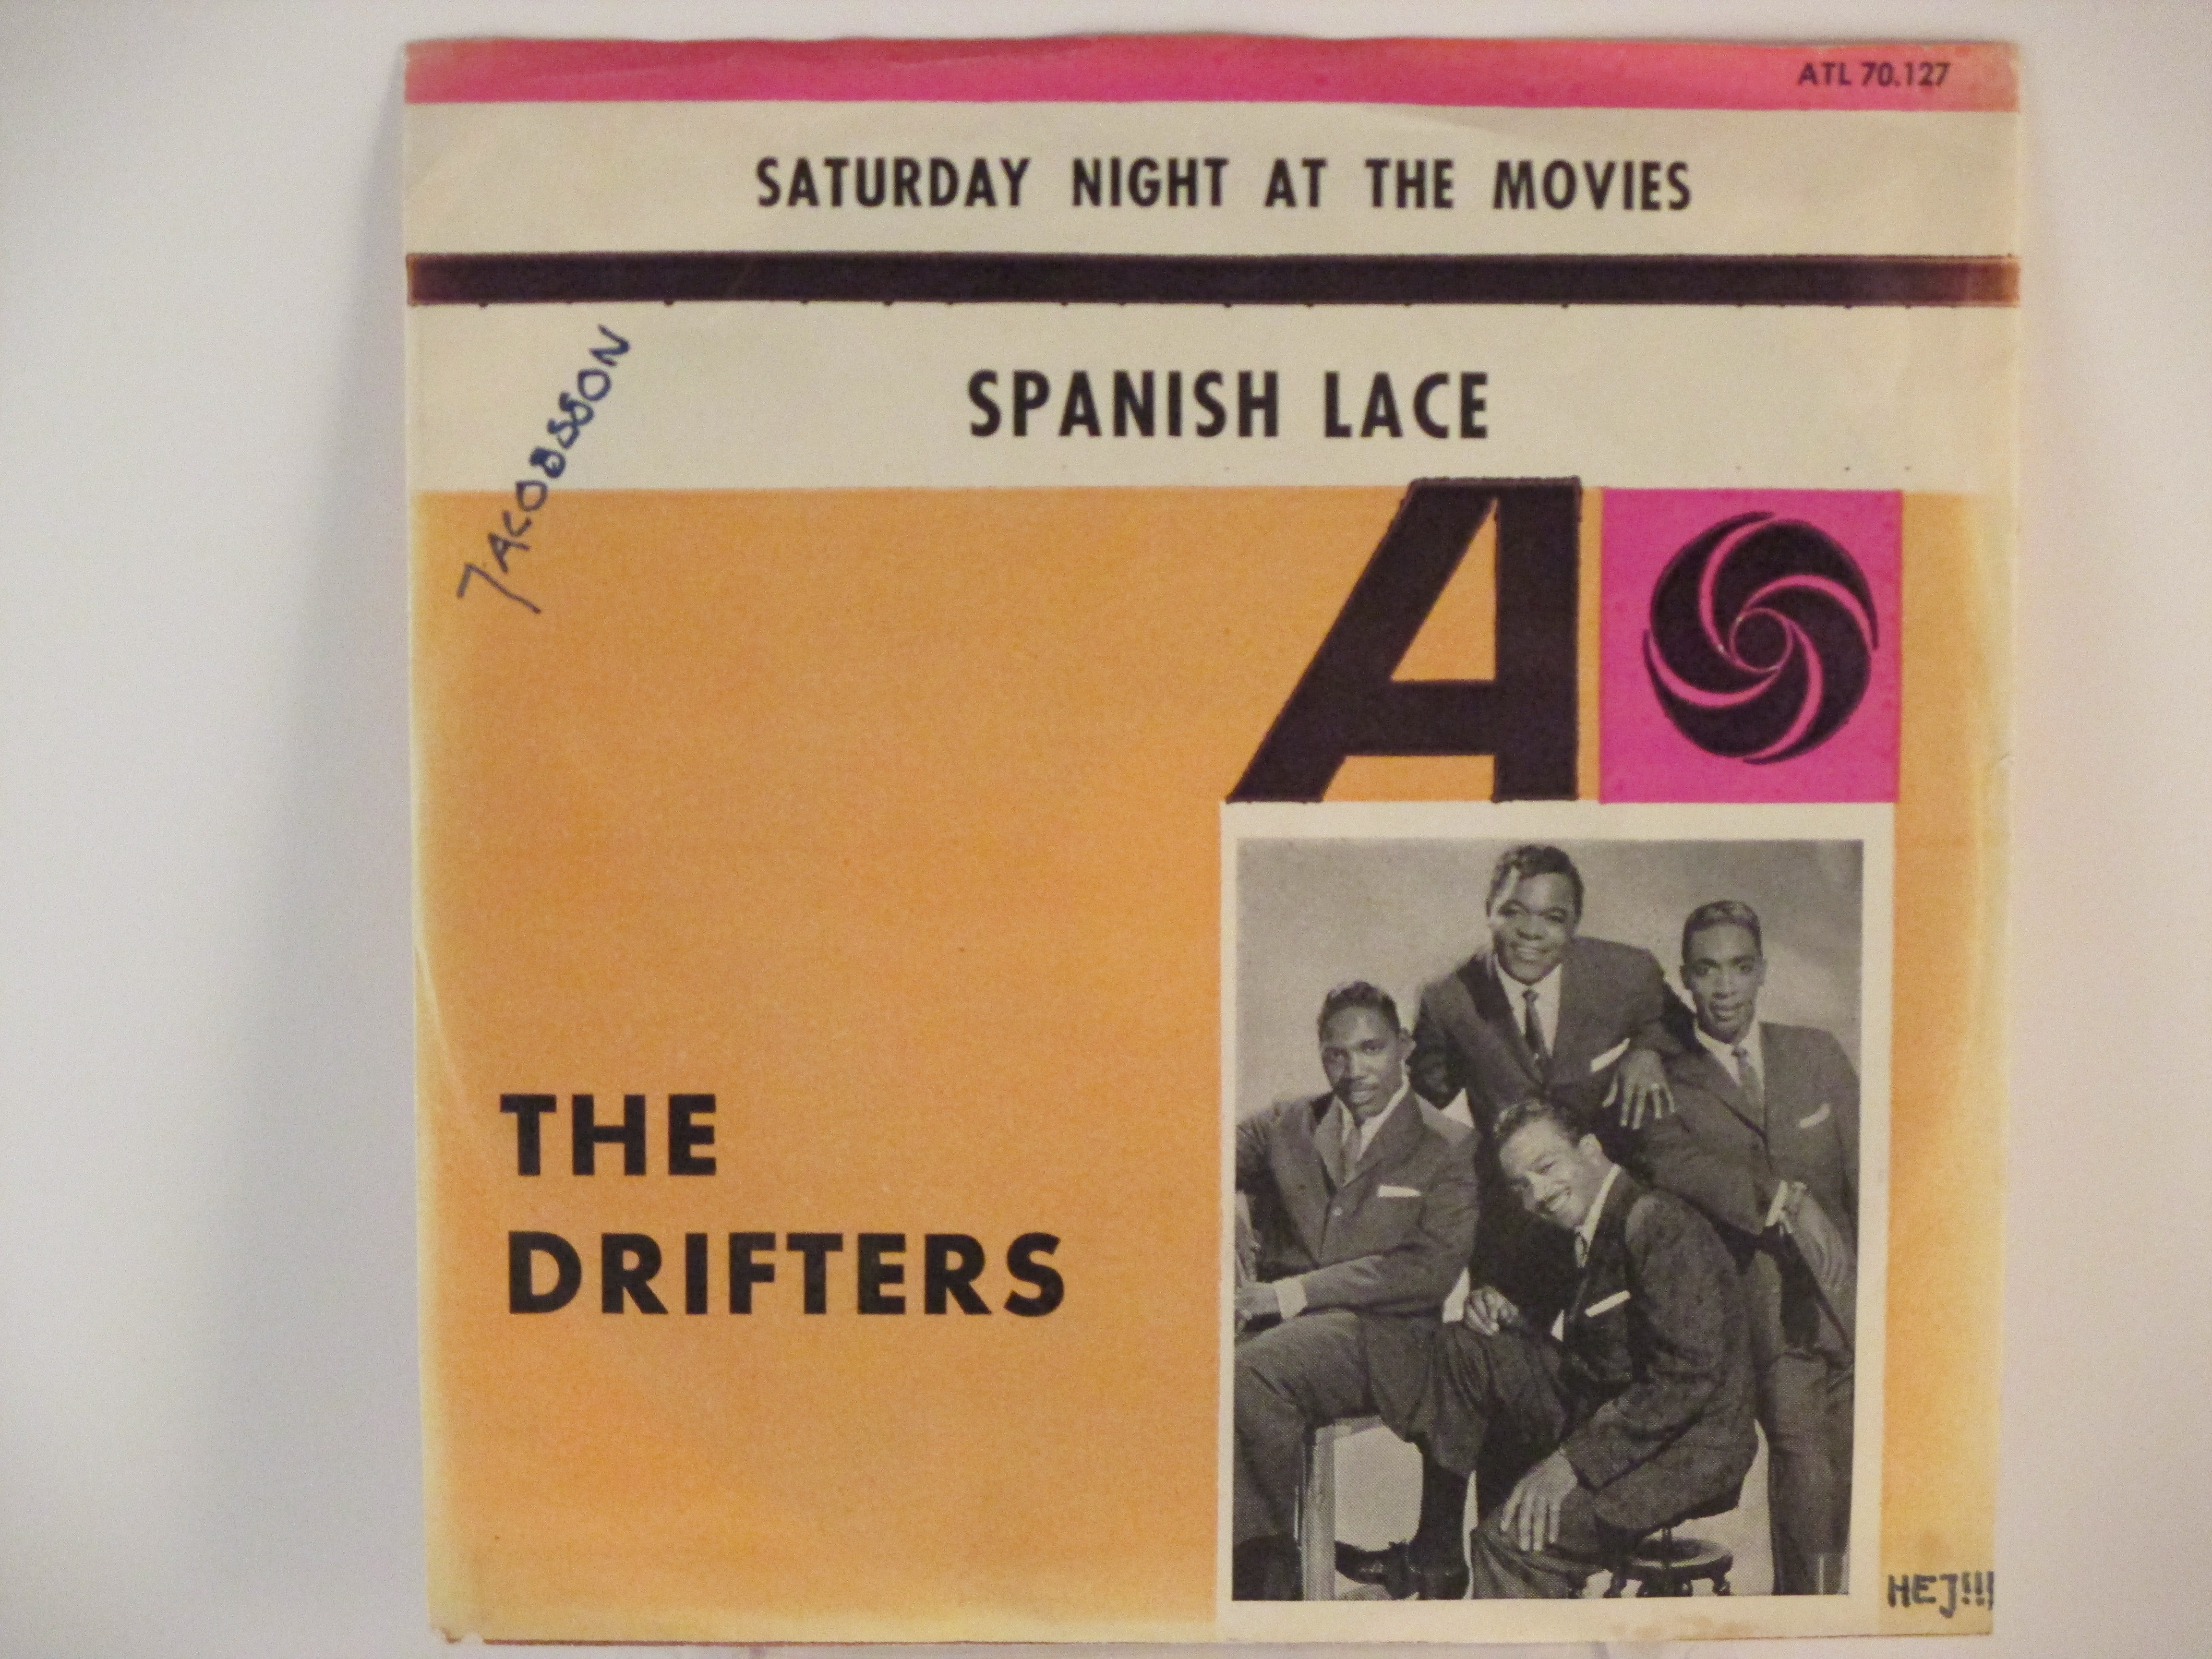 DRIFTERS : Saturday night at the movies / Spanish lace